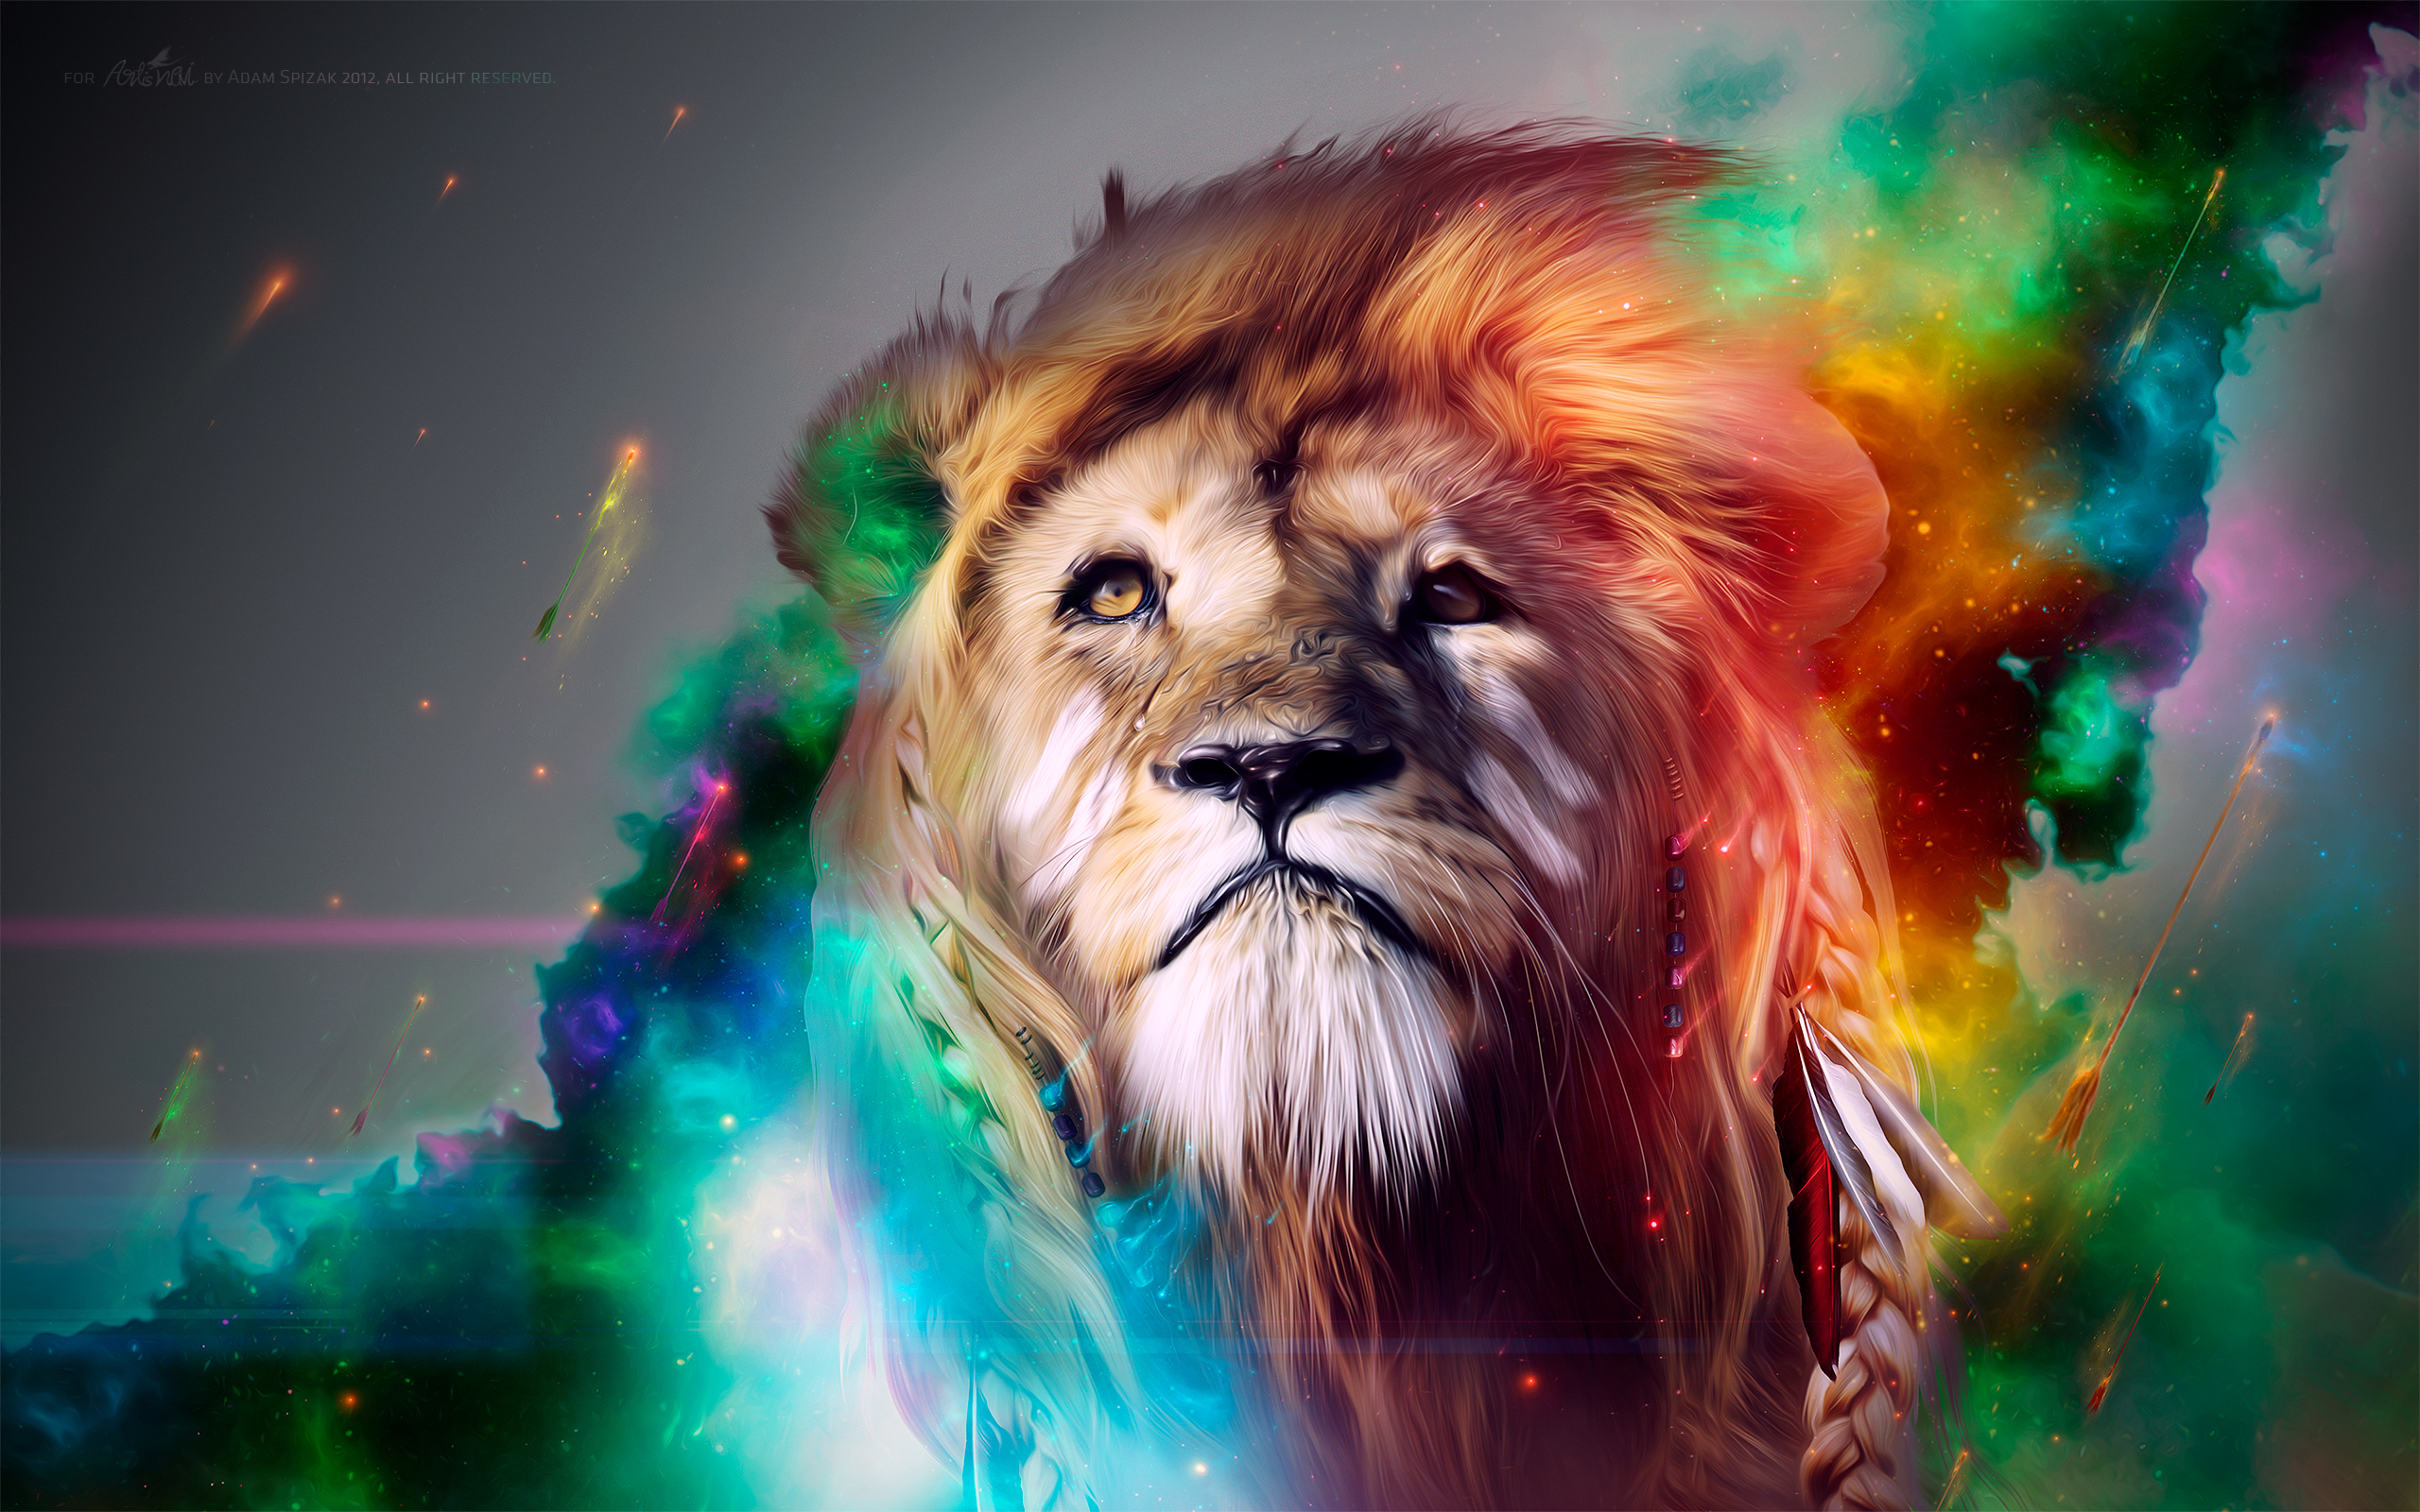 Lion CGI Artwork8819318822 - Lion CGI Artwork - Lion, fox, CGI, Artwork